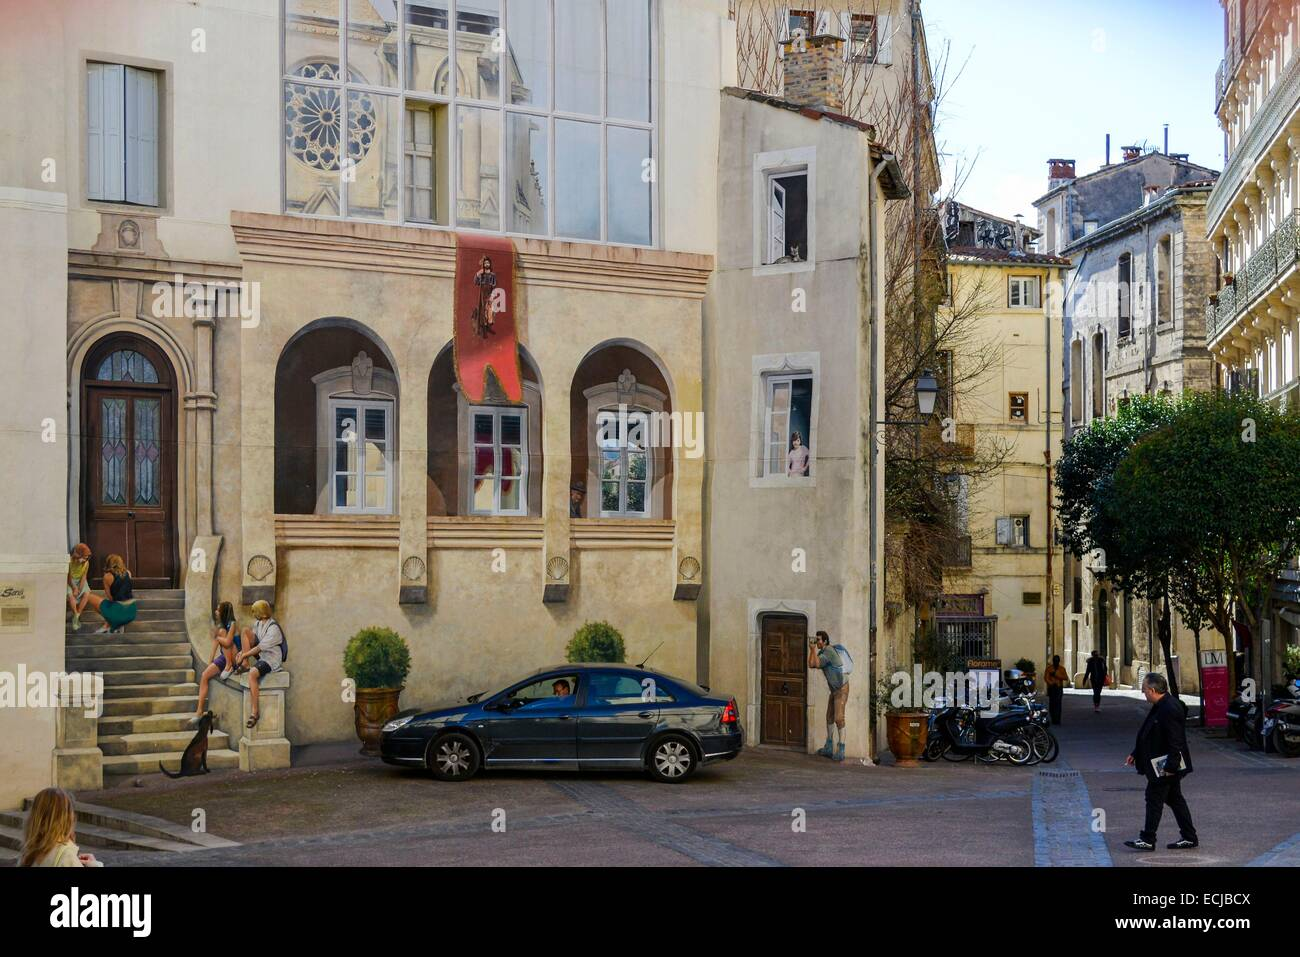 france herault montpellier historic center saint roch place stock photo royalty free image. Black Bedroom Furniture Sets. Home Design Ideas